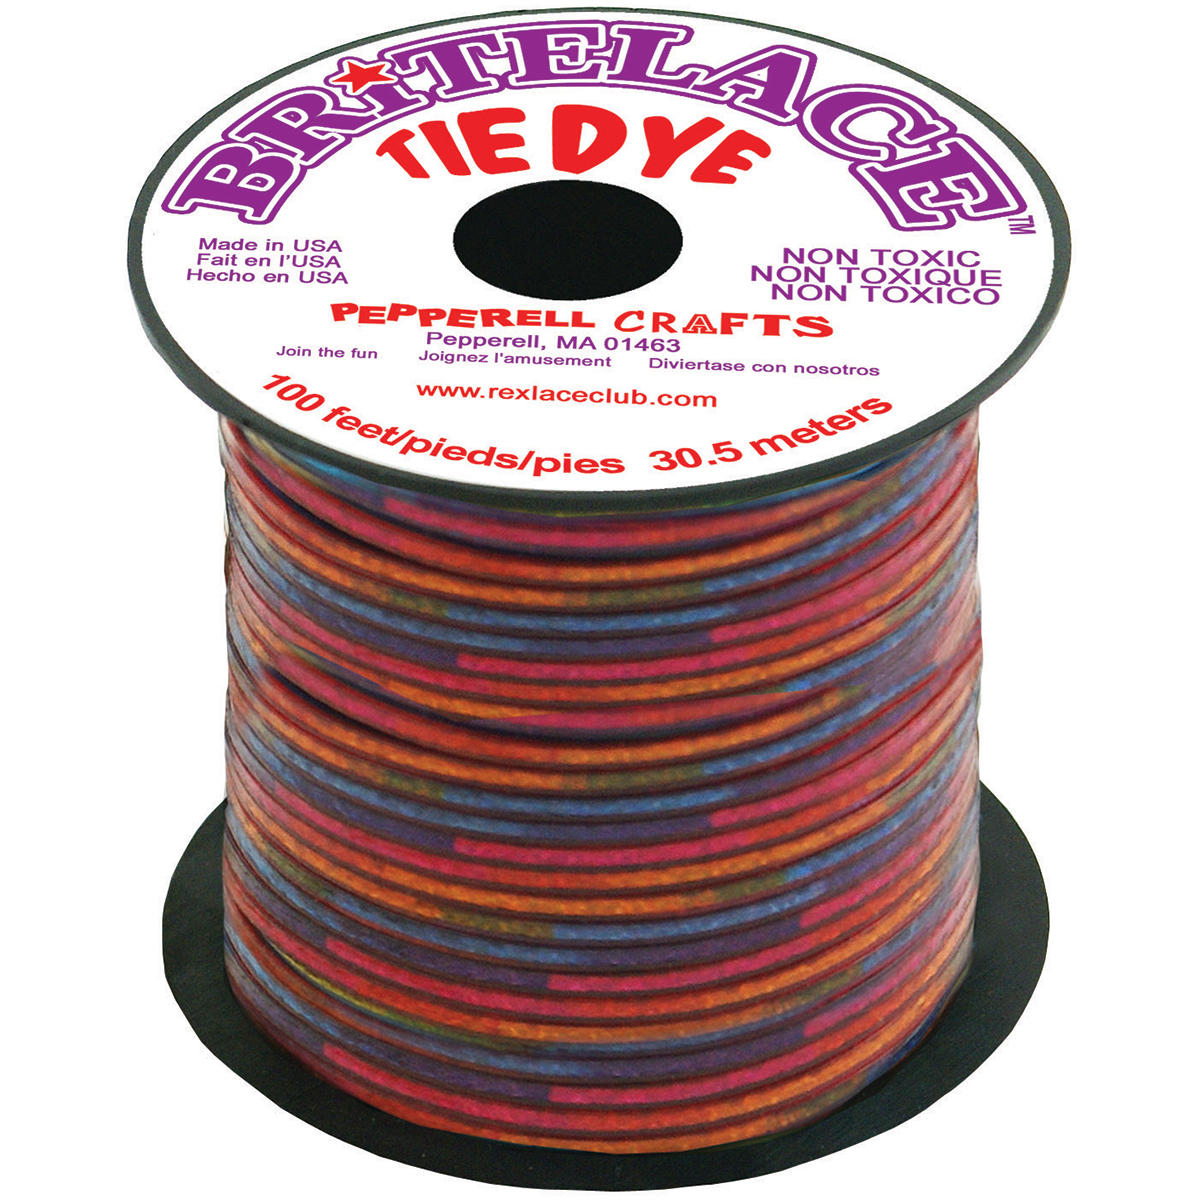 RED TIEDYE-REXLACE SPOOL